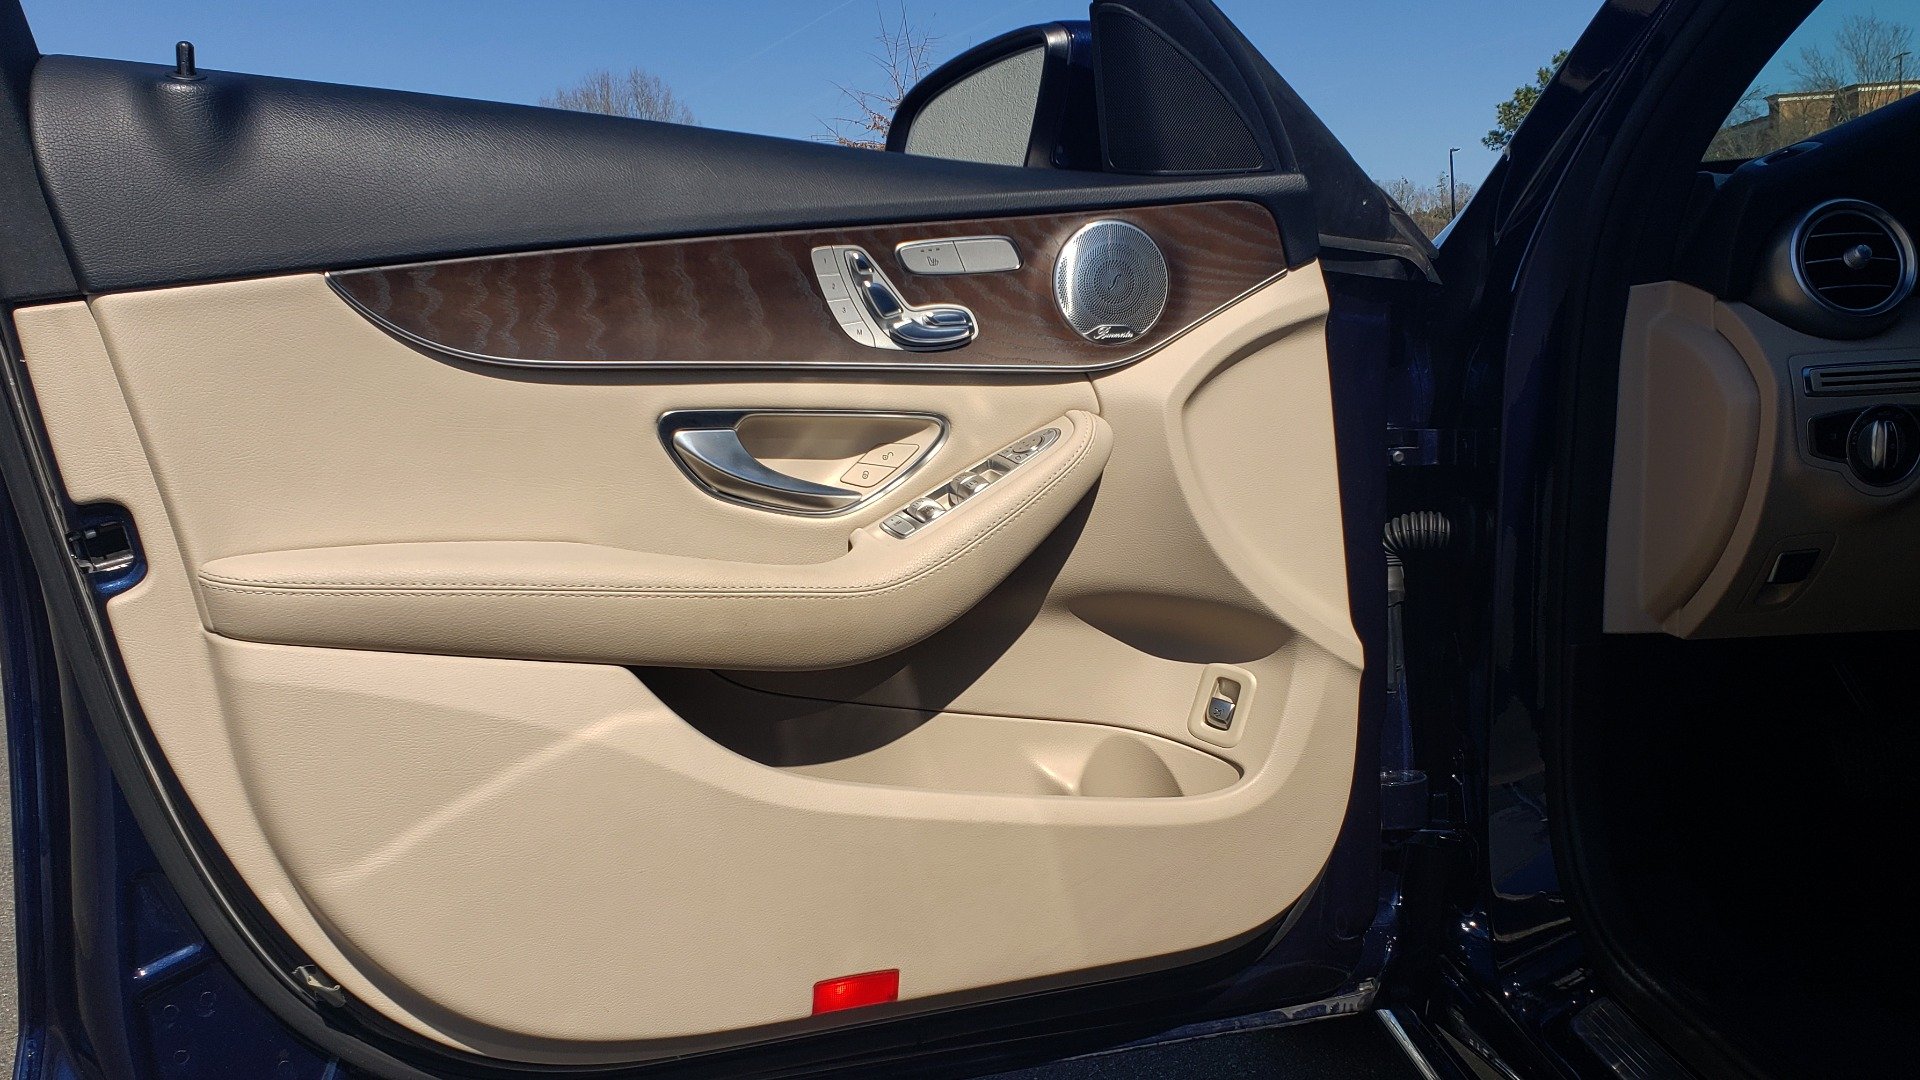 Used 2018 Mercedes-Benz C-CLASS C 300 PREMIUM / SUNROOF / BURMESTER / BSM / REARVIEW for sale $23,995 at Formula Imports in Charlotte NC 28227 26